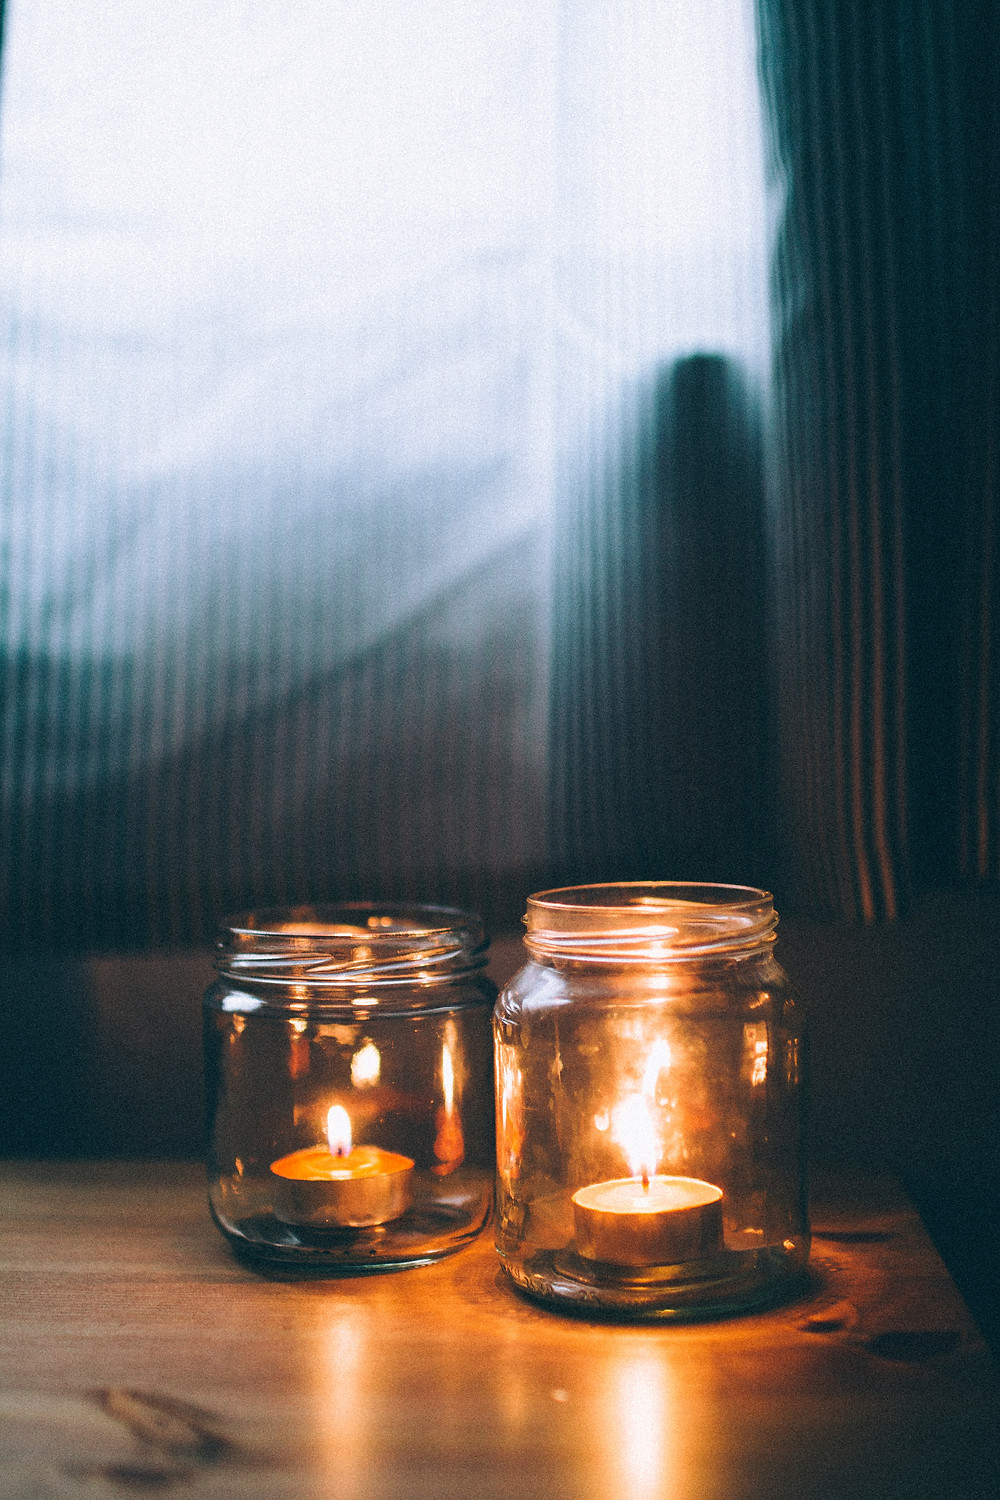 A candle mindfulness exercise can reduce stress